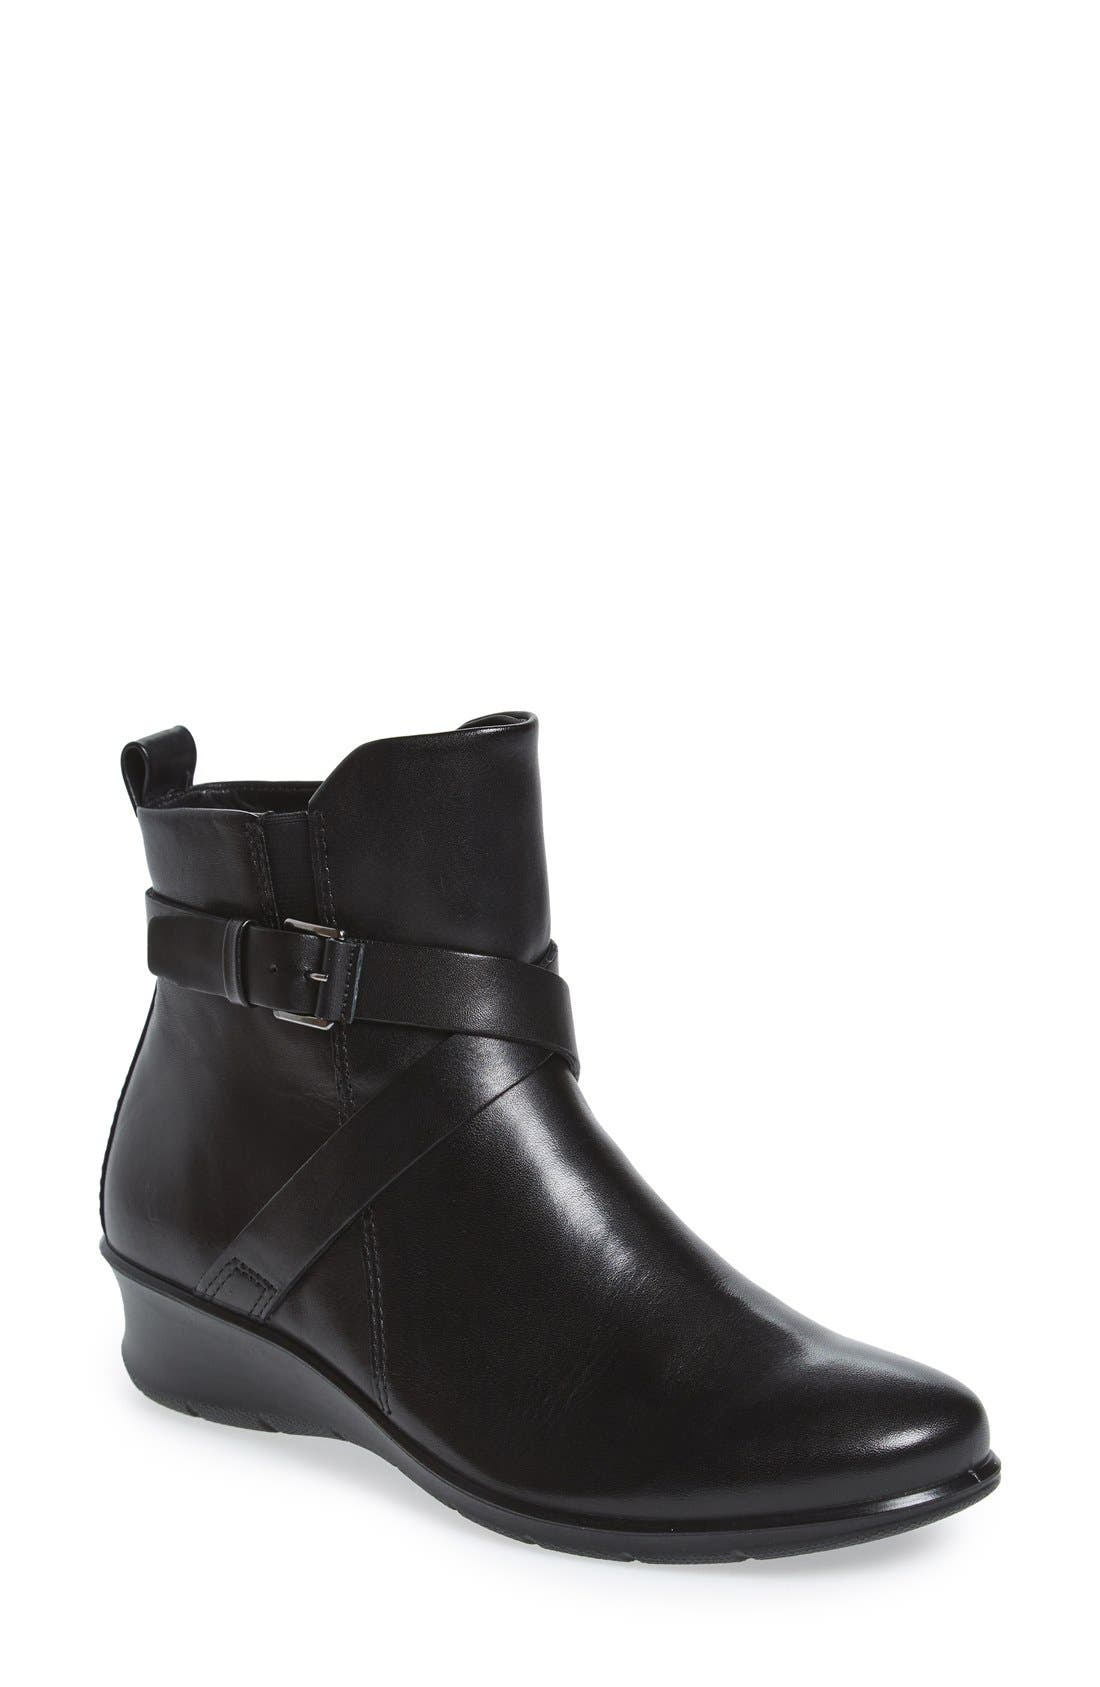 'Felicia' Strappy Zip-Up Wedge Bootie,                             Main thumbnail 1, color,                             008